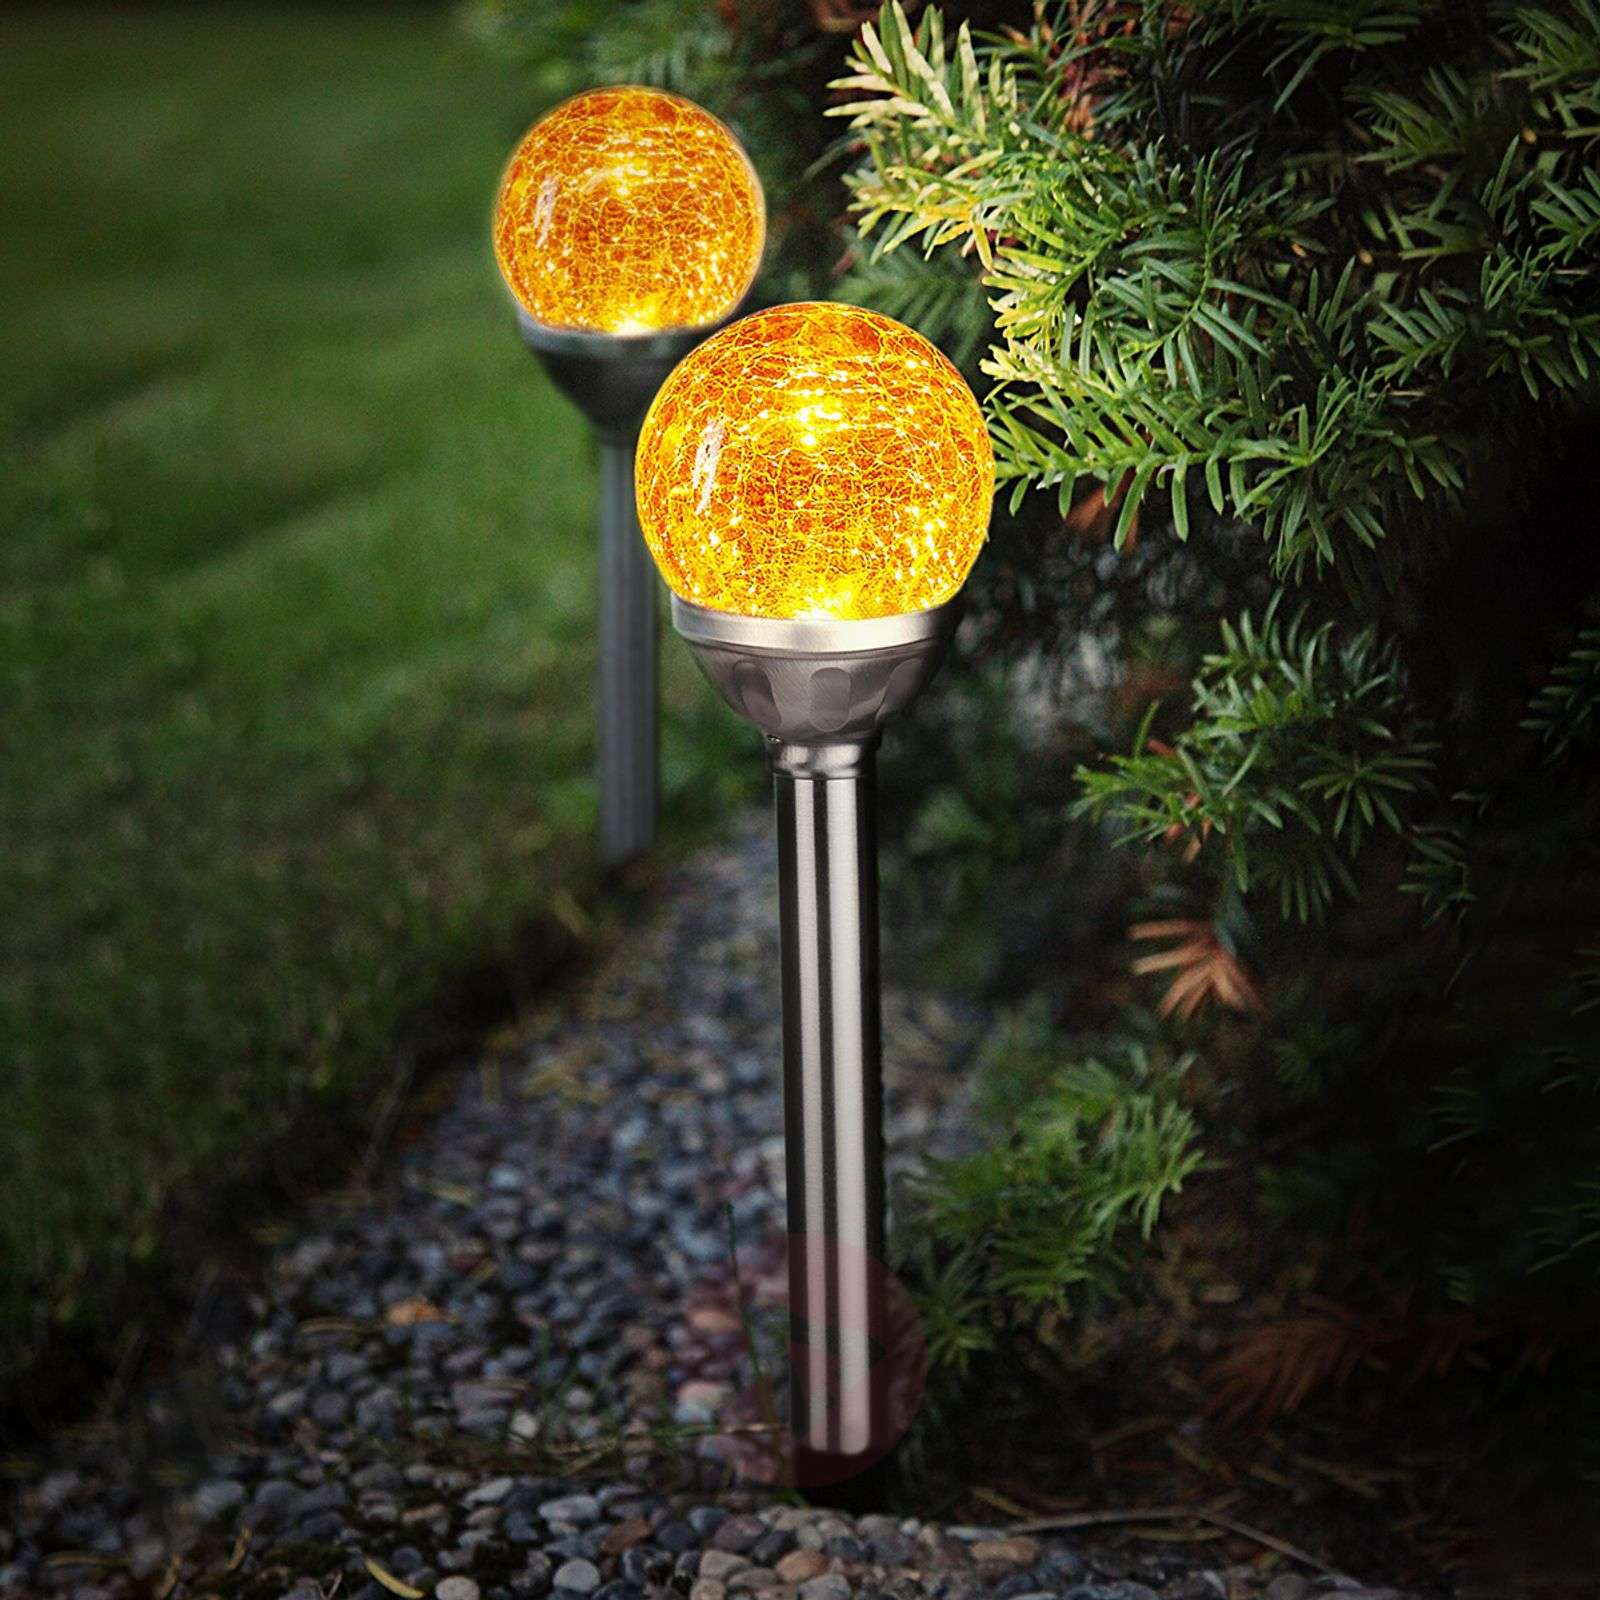 Roma LED solar light with glass sphere, set of 2-1523073-01